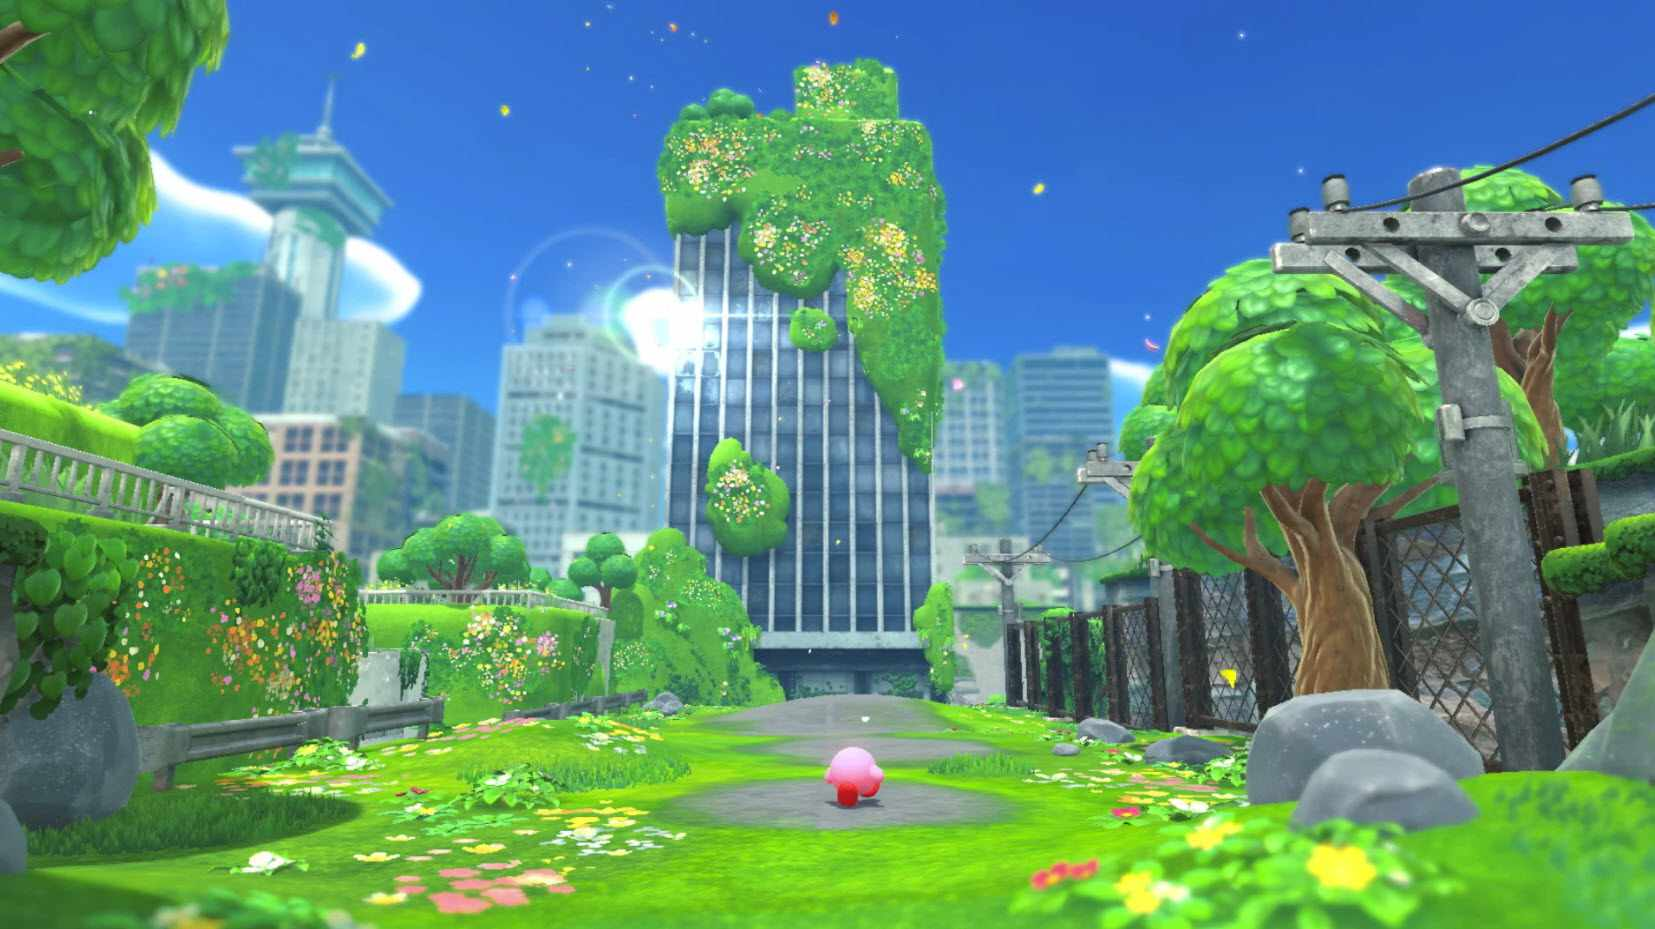 A screenshot from the 'Kirby and the Forgotten Land' game.